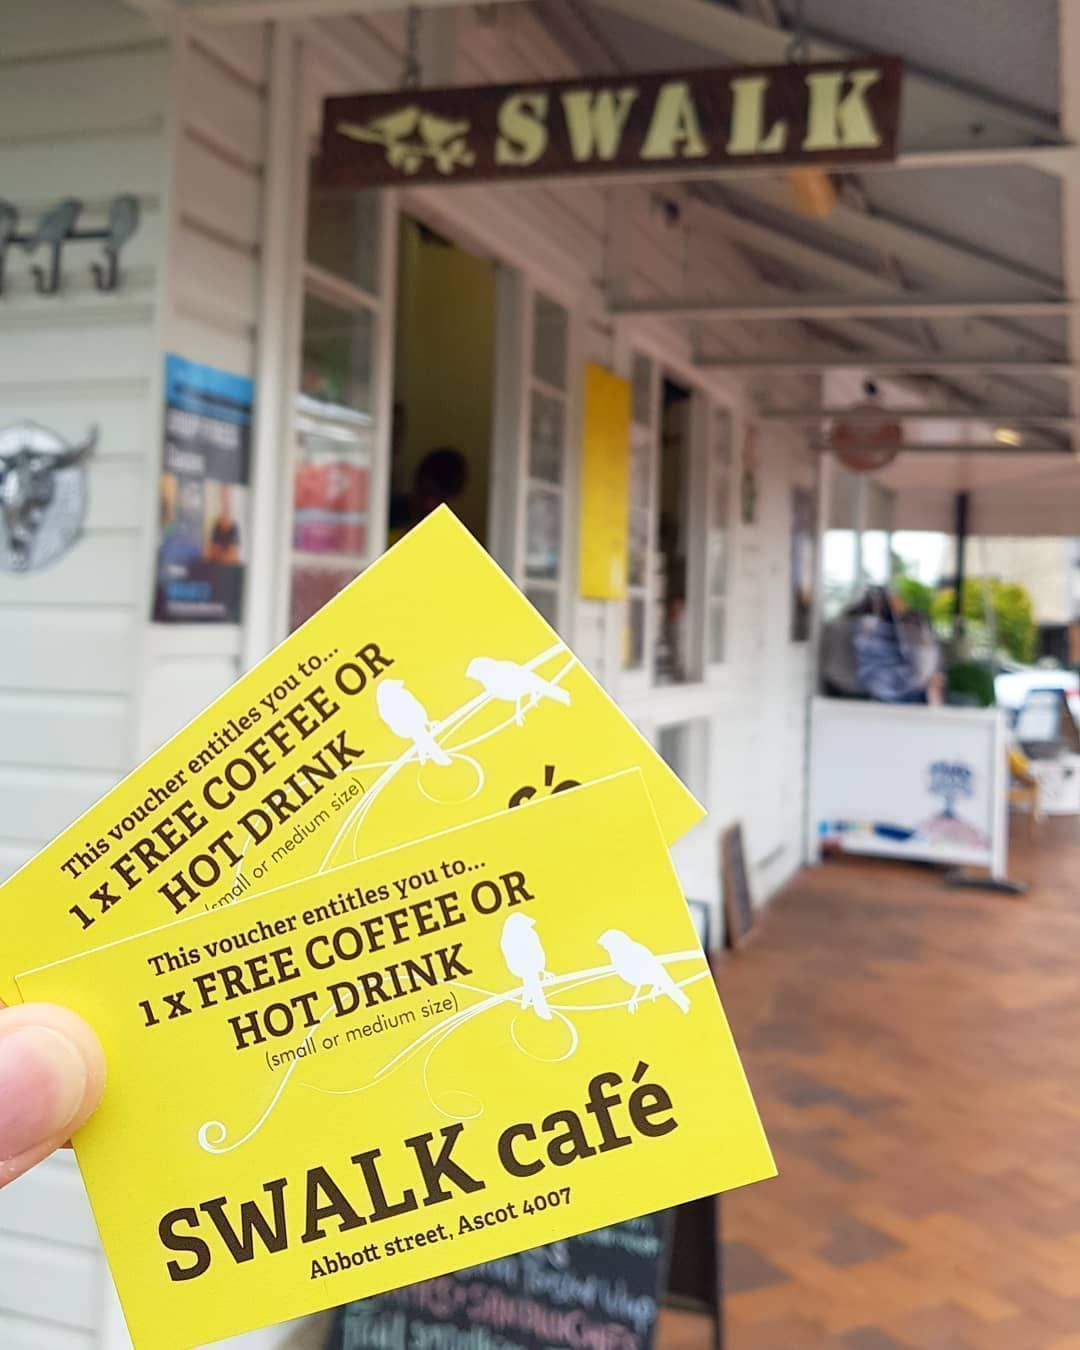 Celebrate International Coffee Day! First five people to comment and tag a friend get two coffees on me to enjoy at @swalk_cafe Ascot. You must be able to meet me to grab vouchers. #internationalcoffeeday #coffee #local #community #4007 #buyme #property #queenslander #forsale #justlisted #selling #ascot #suburb #prestige #milliondollarlisting #living #investment #architecture  #luxury #style #ideas #design #interiors #mcgrathestateagents #mcgrath #home #openhomes #realestate #nationalcoffeedayid